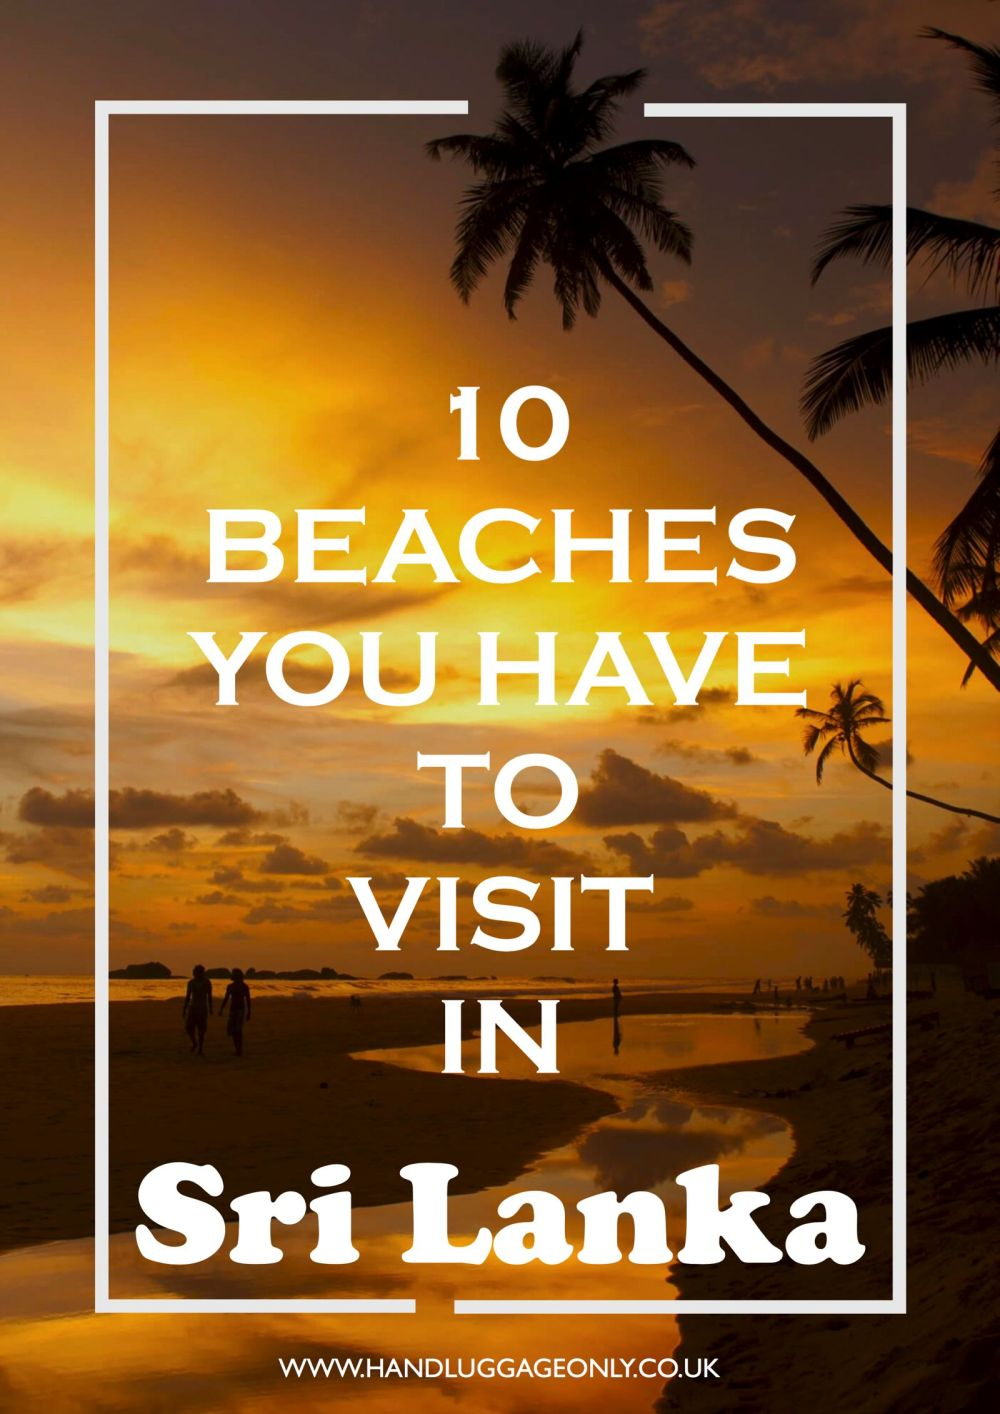 10 Beaches You Have To Visit In Sri Lanka